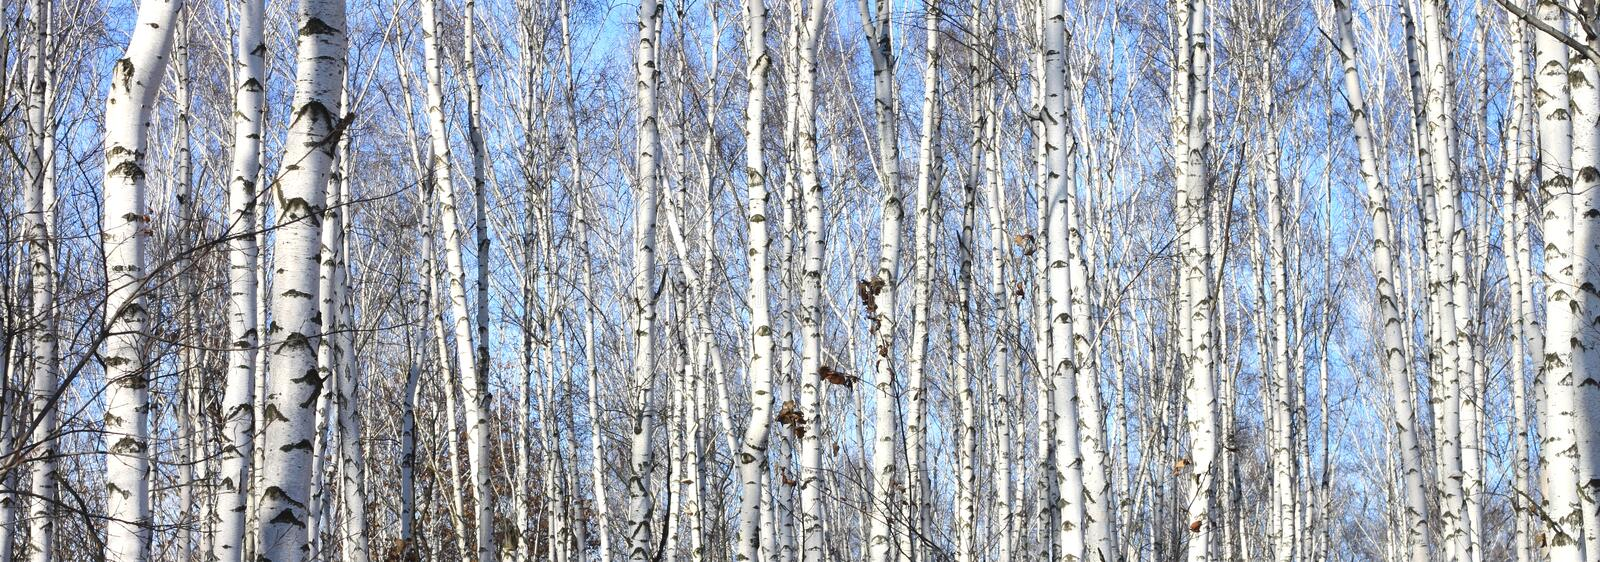 Birch trees in forest. Trunks of birch trees in forest royalty free stock photo